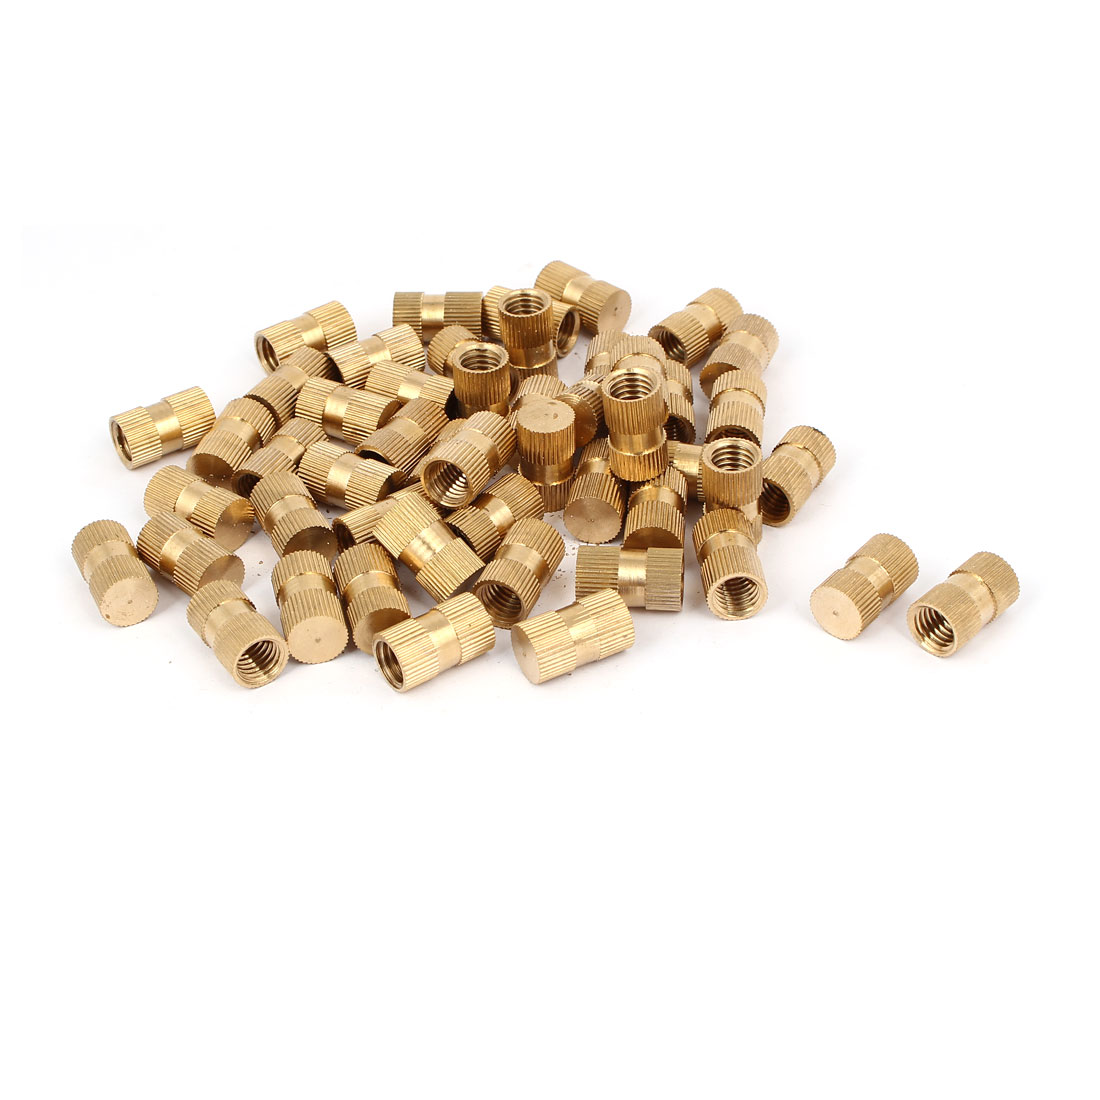 M10 x 20mm 12mm OD Brass Injection Molding Threaded Knurled Thumb Nut 50PCS